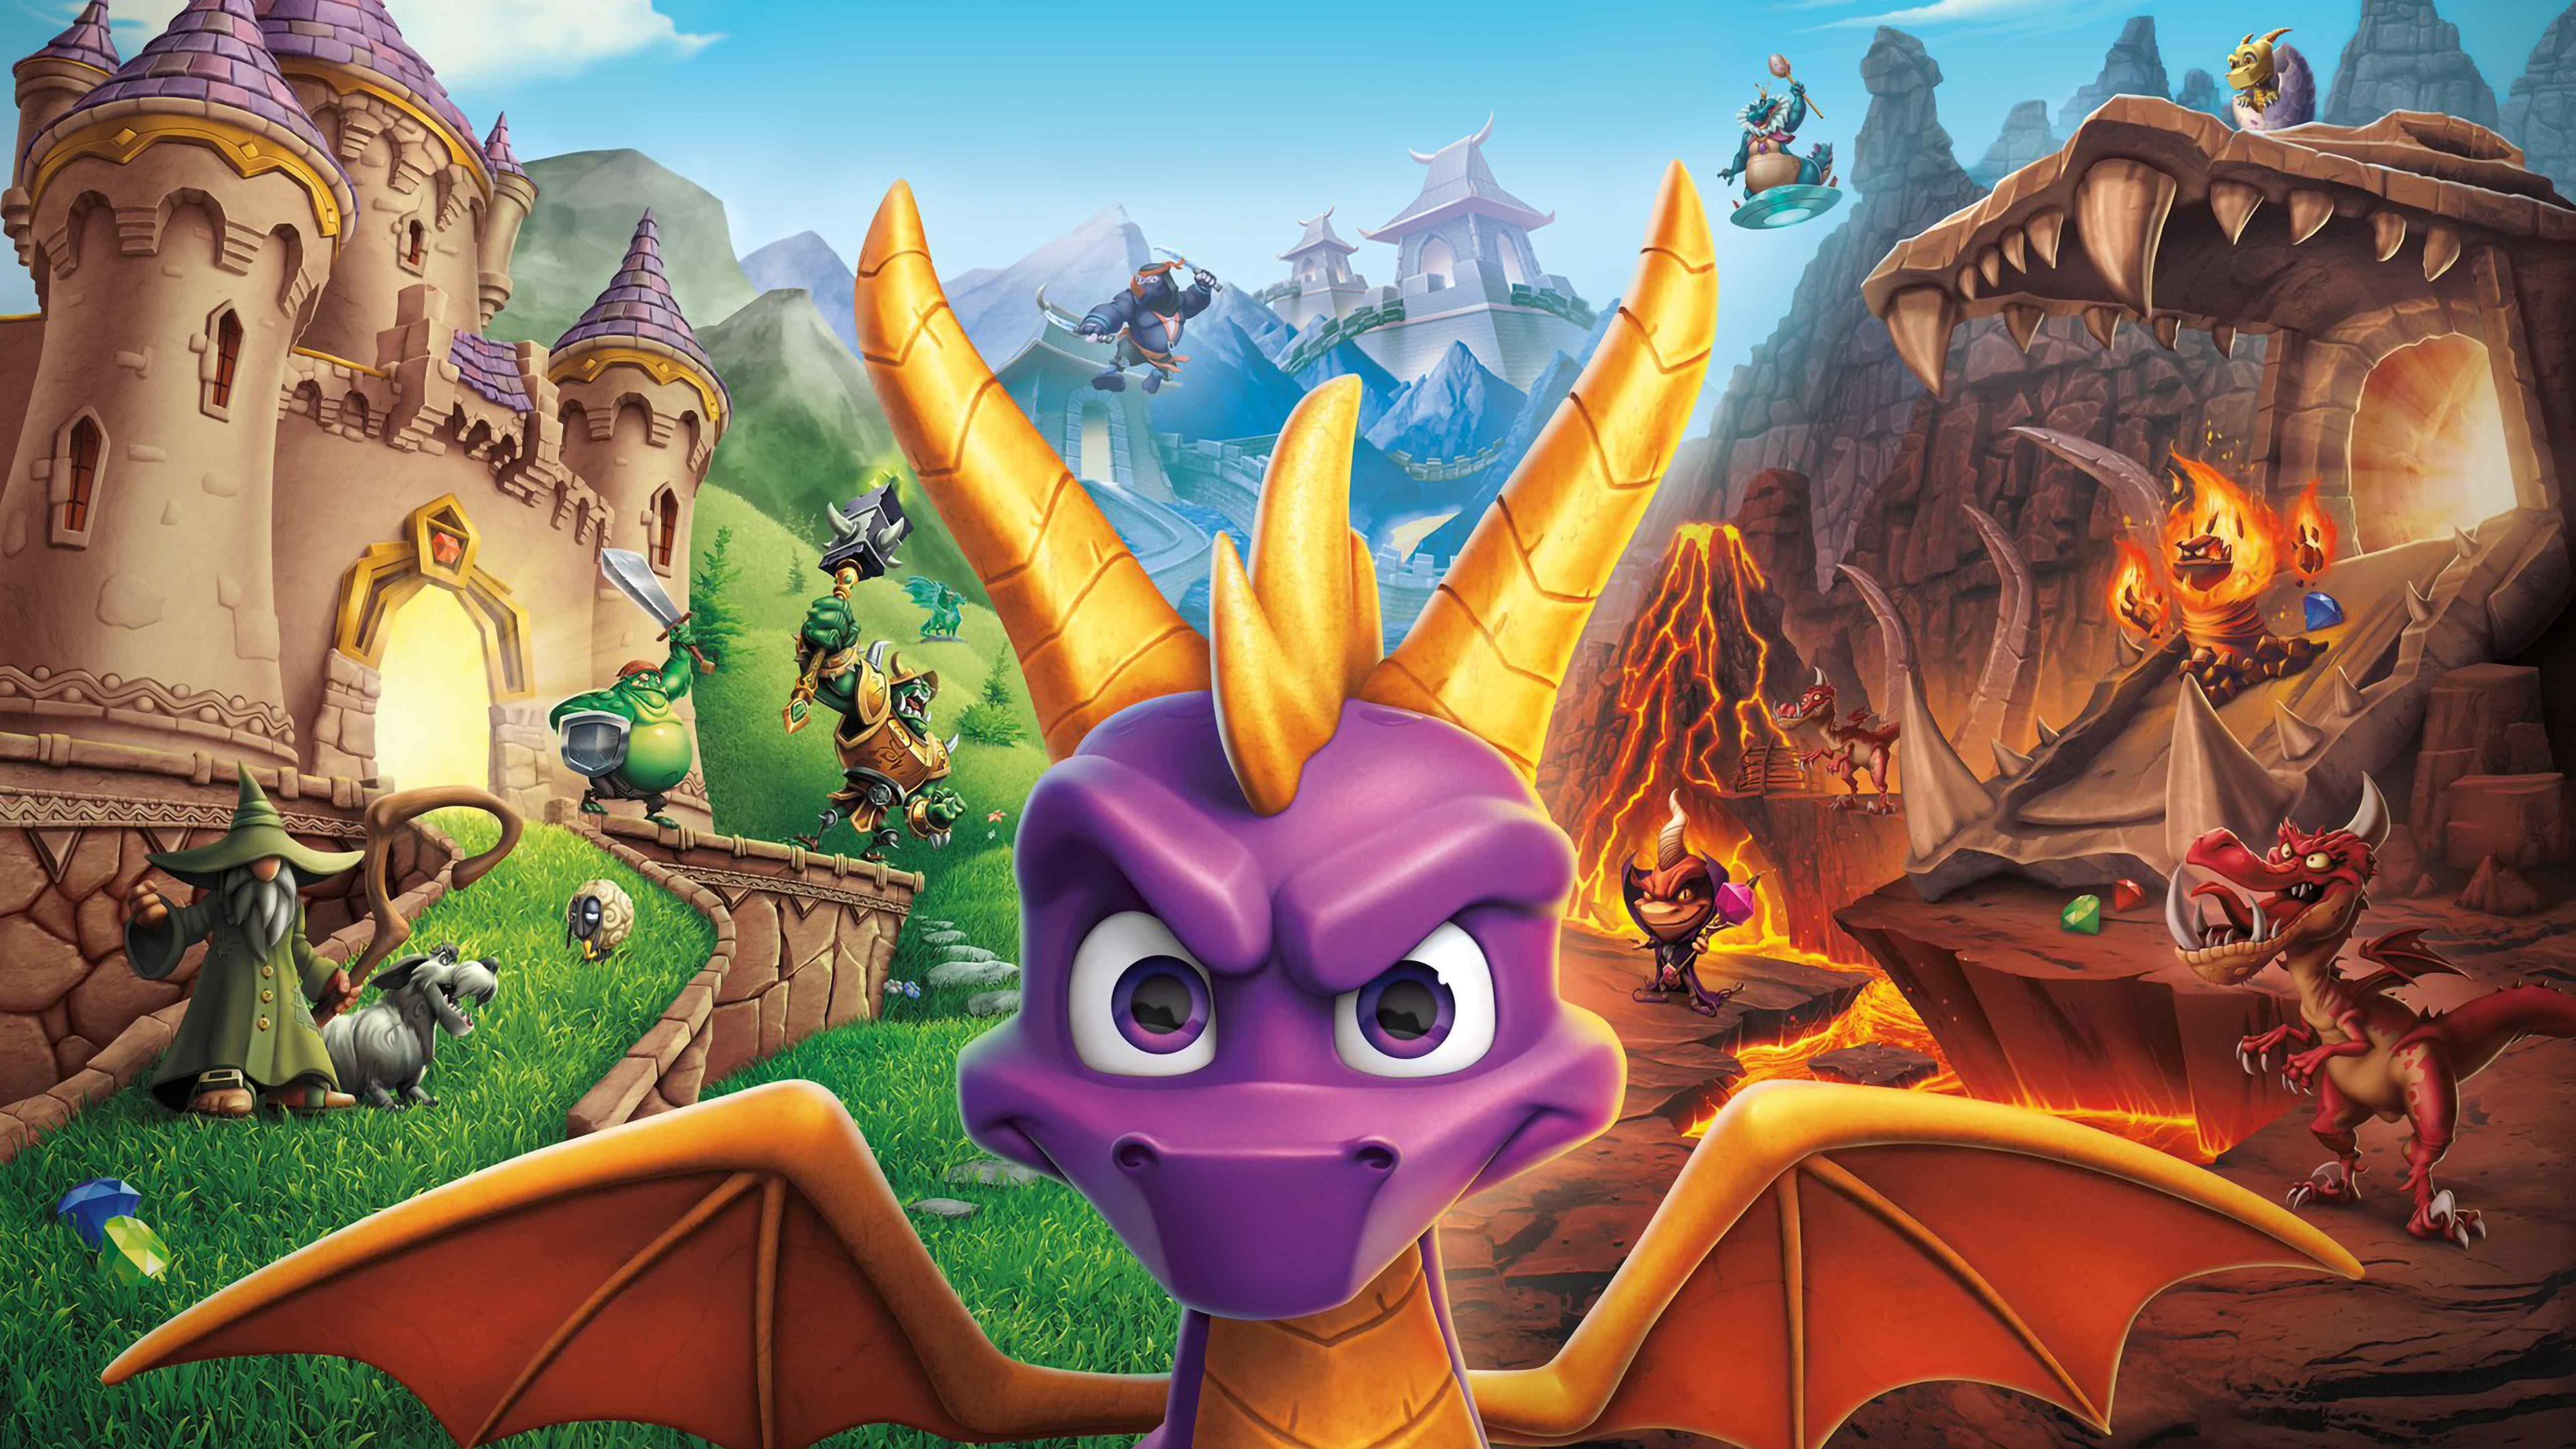 spyro-reignited-trilogy-jeu-video-test-avis-2